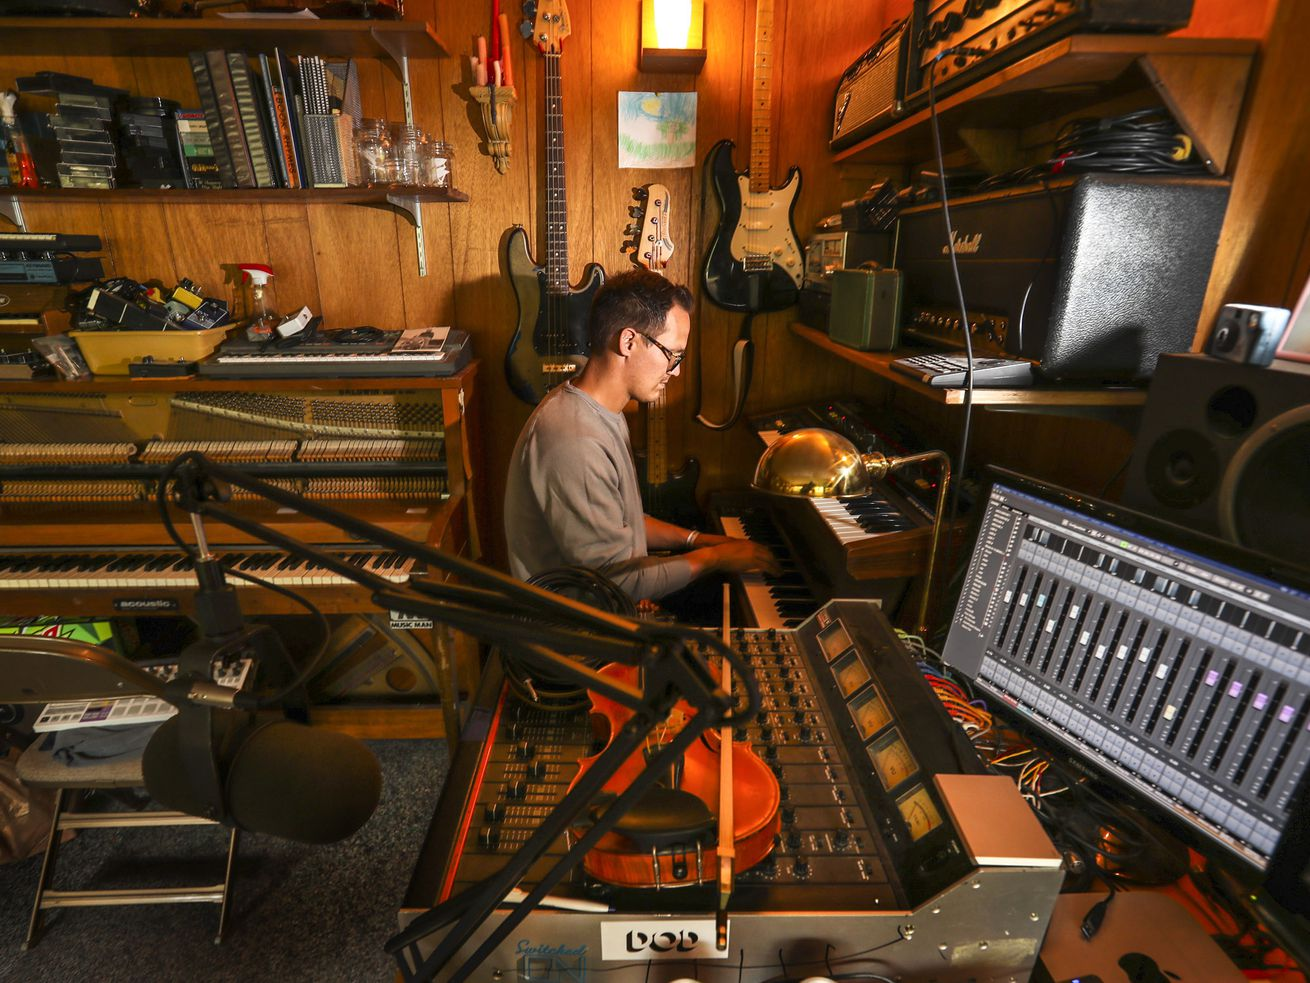 """Musician Stuart Maxfield plays a keyboard in his home studio in Springville on Thursday, Sept. 10, 2020. Maxfield released his disco-inspired solo album """"Shun the Yuck"""" the same day Utah Governor Gary Herbert declared a state of emergency because of COVID-19."""